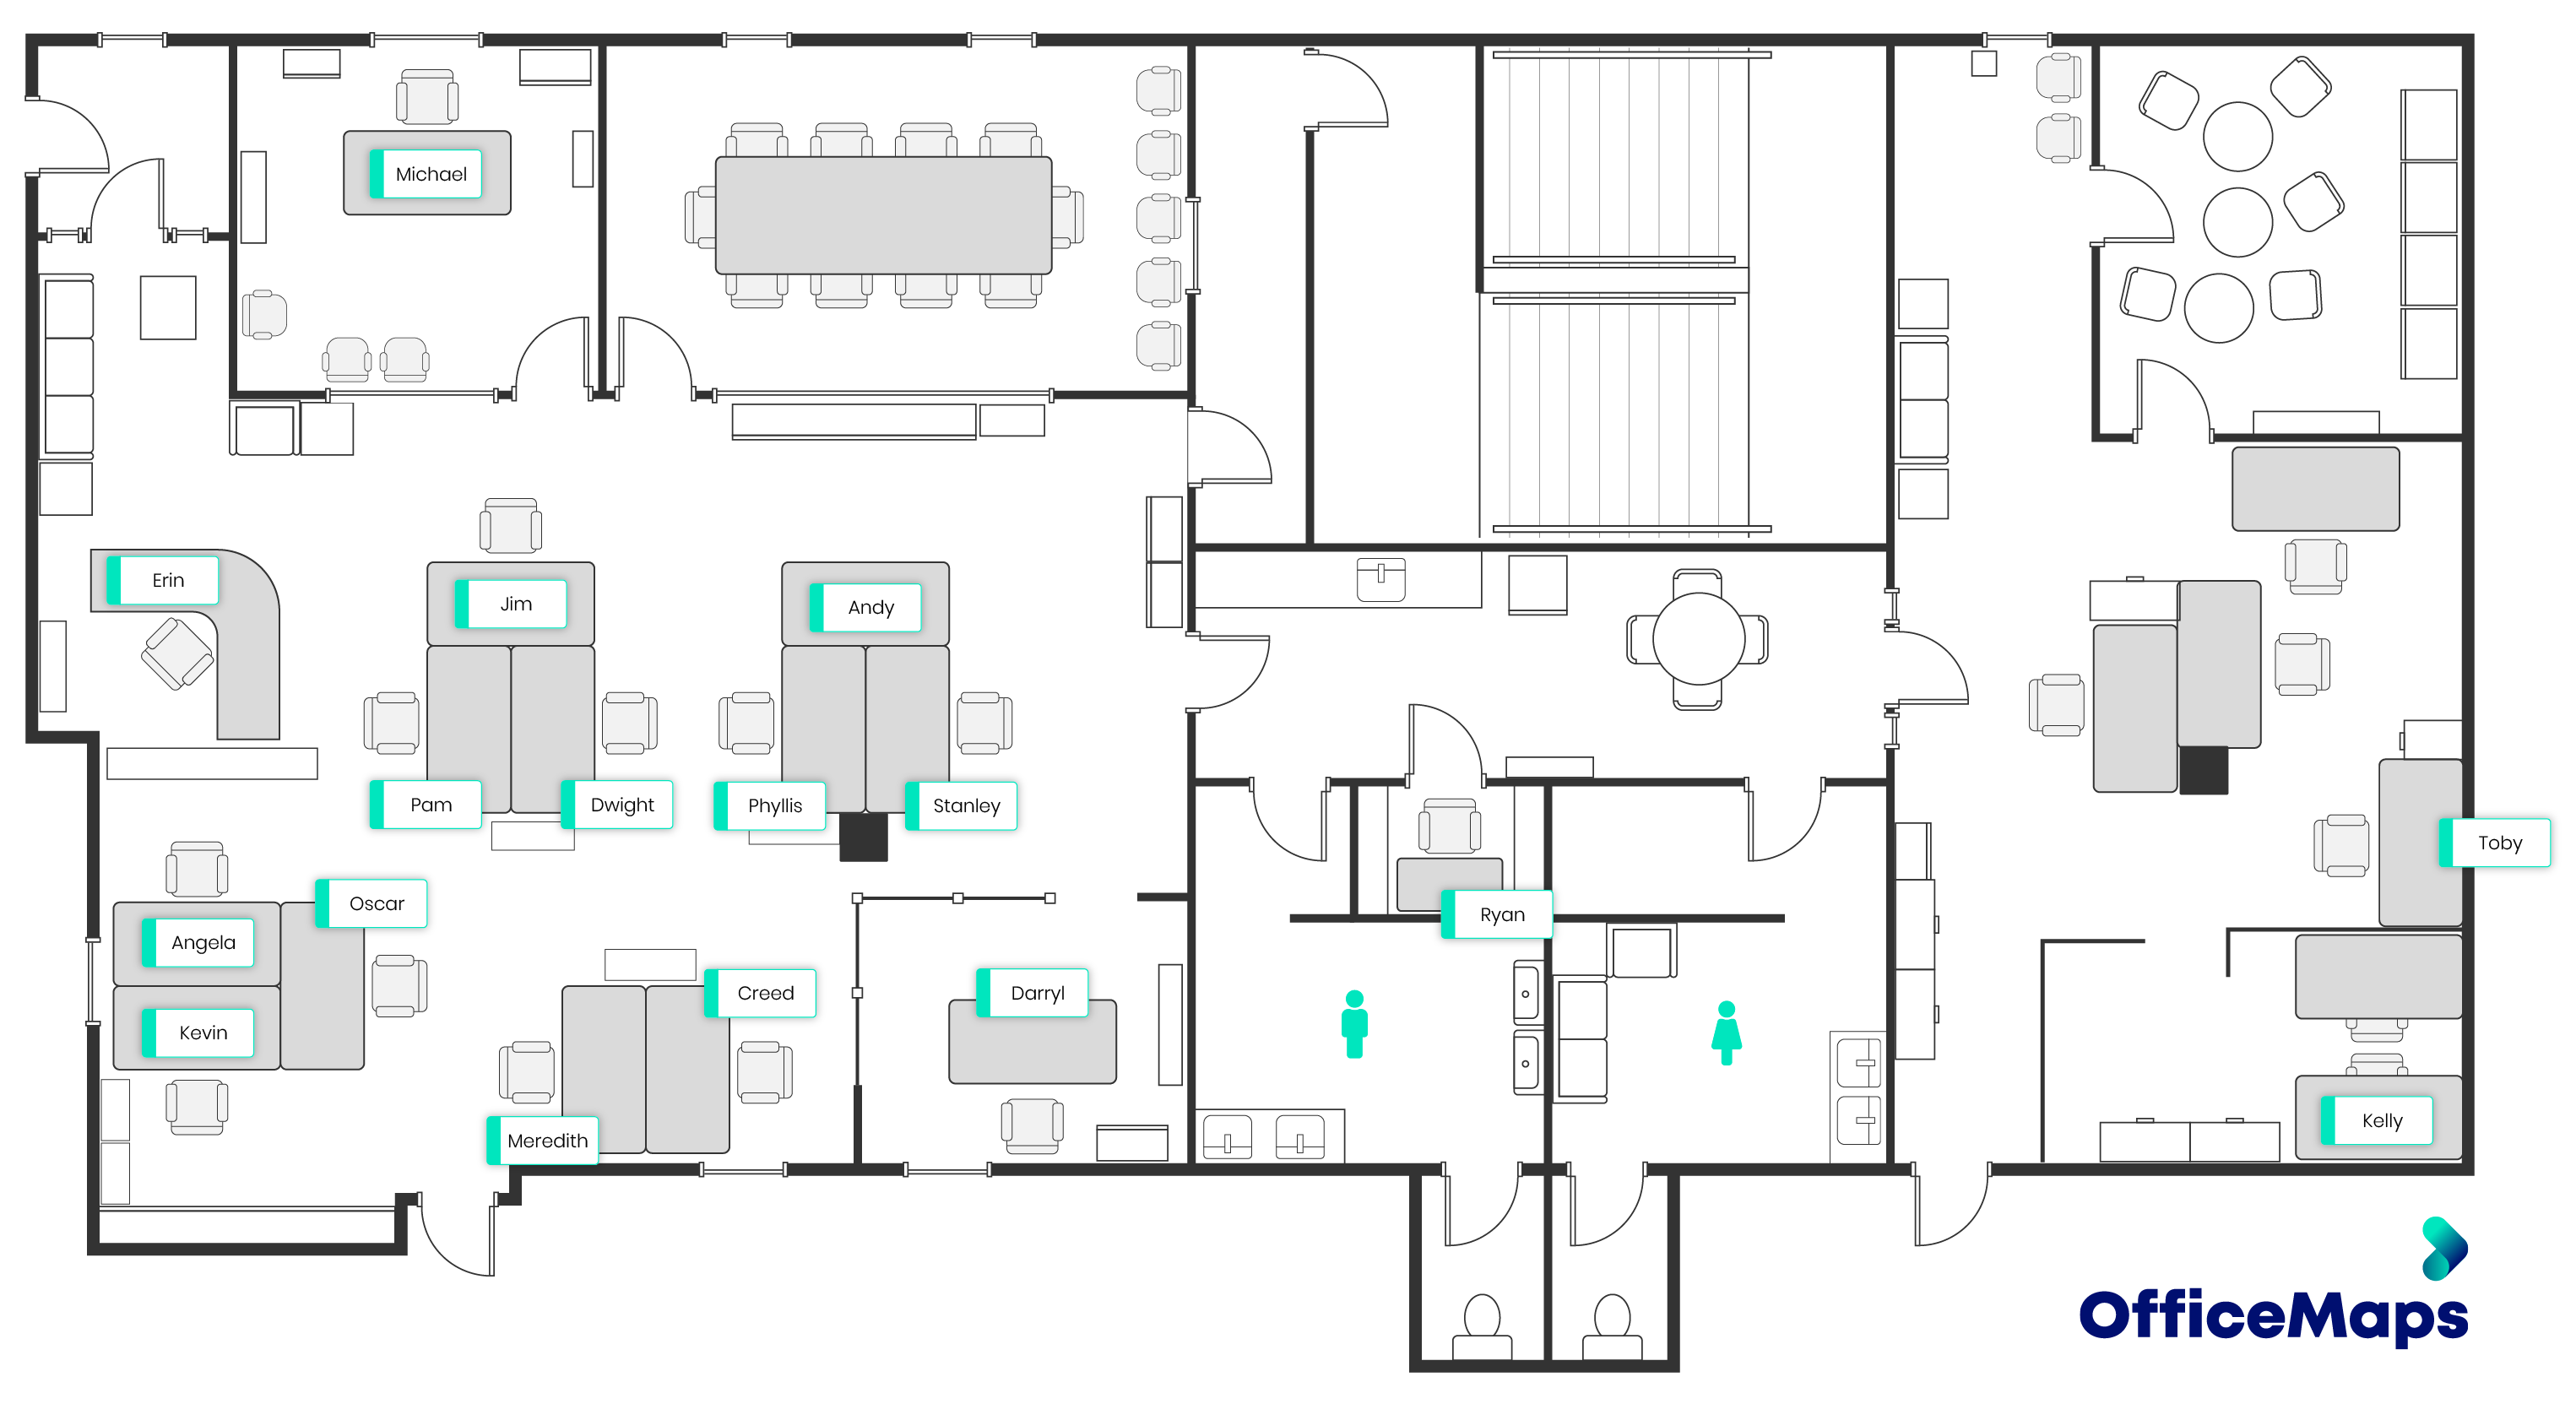 Map of The Office - Dunder Mifflin Office from TV Show